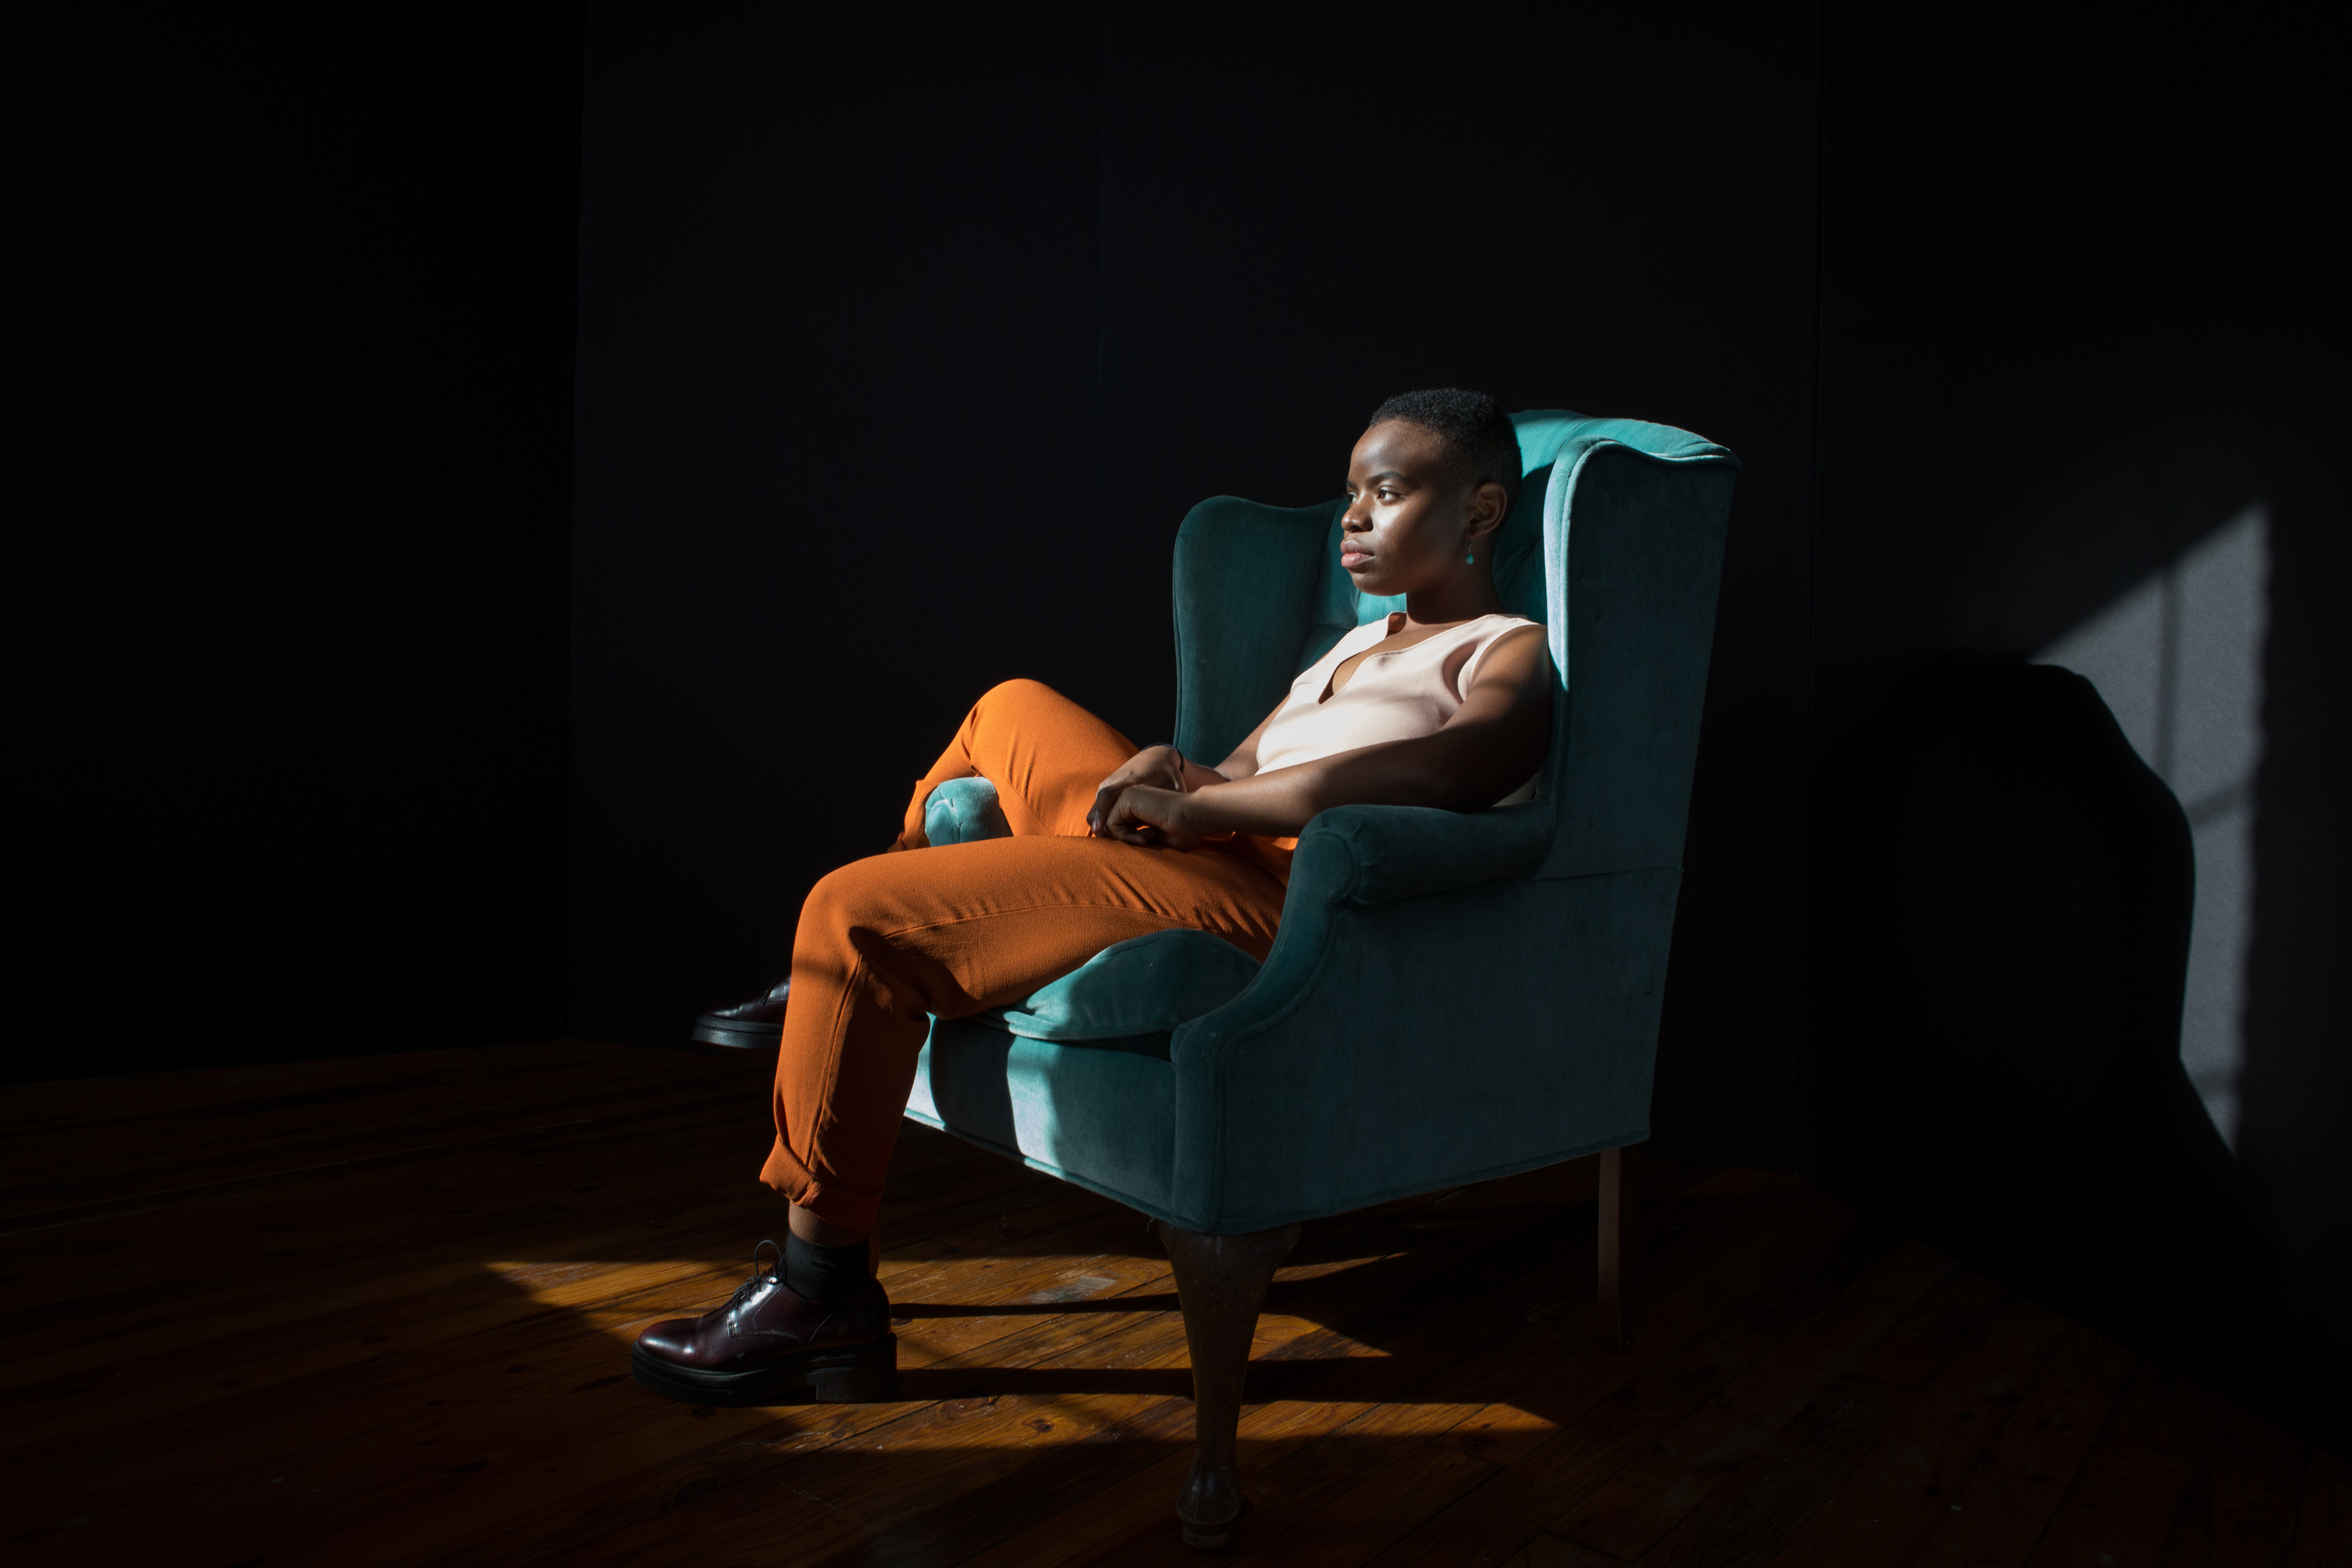 Vagabon's powerful new album is a testament to self-sufficiency